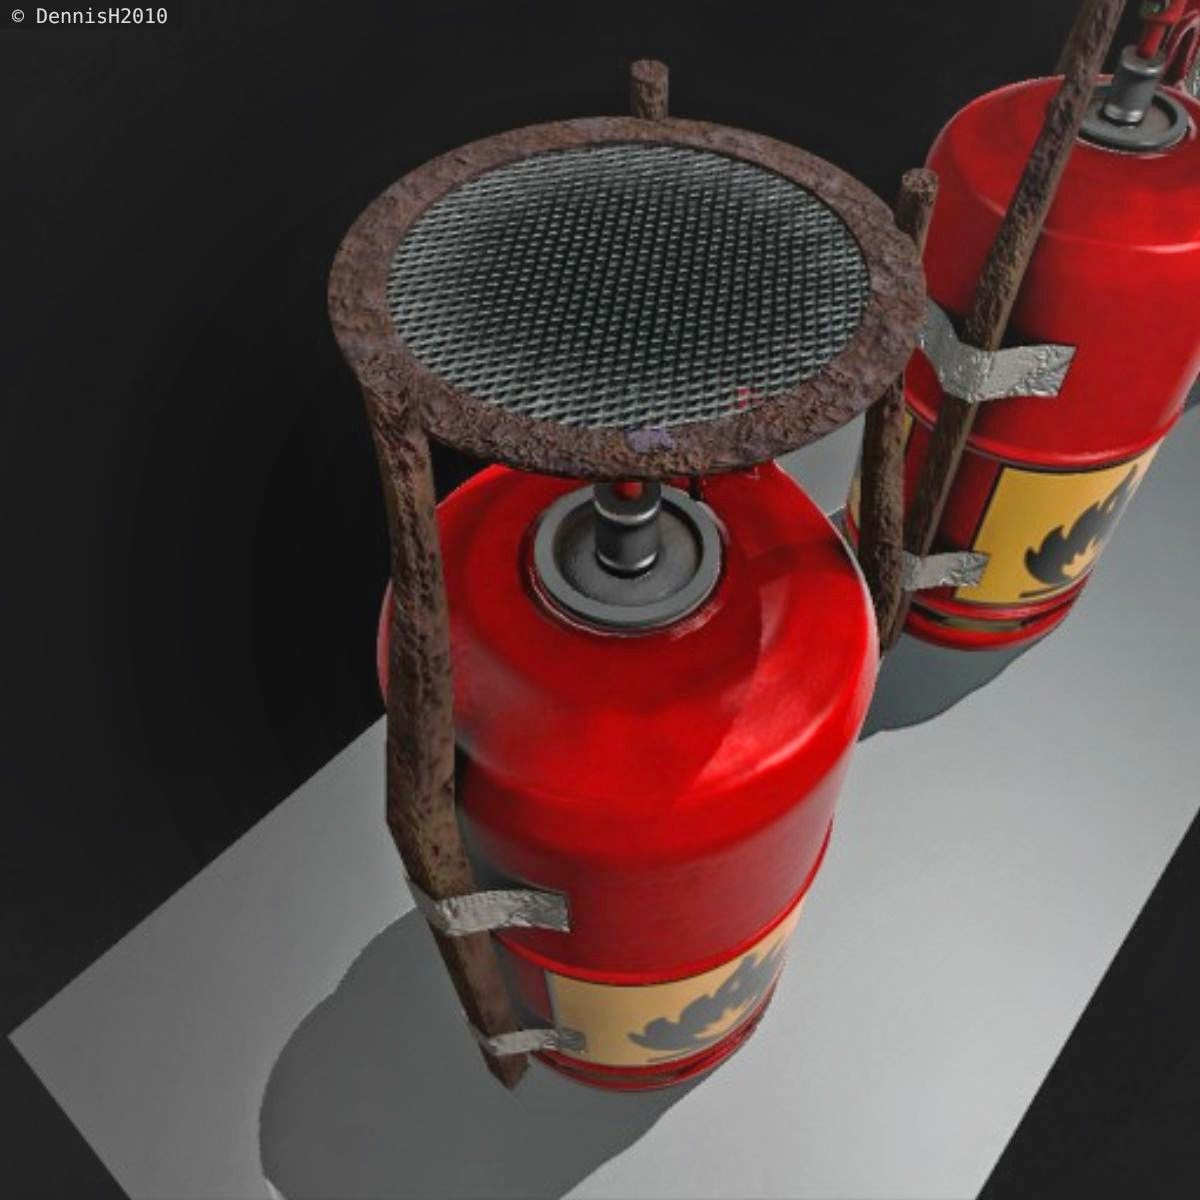 improvised gas cooker by DennisH2010